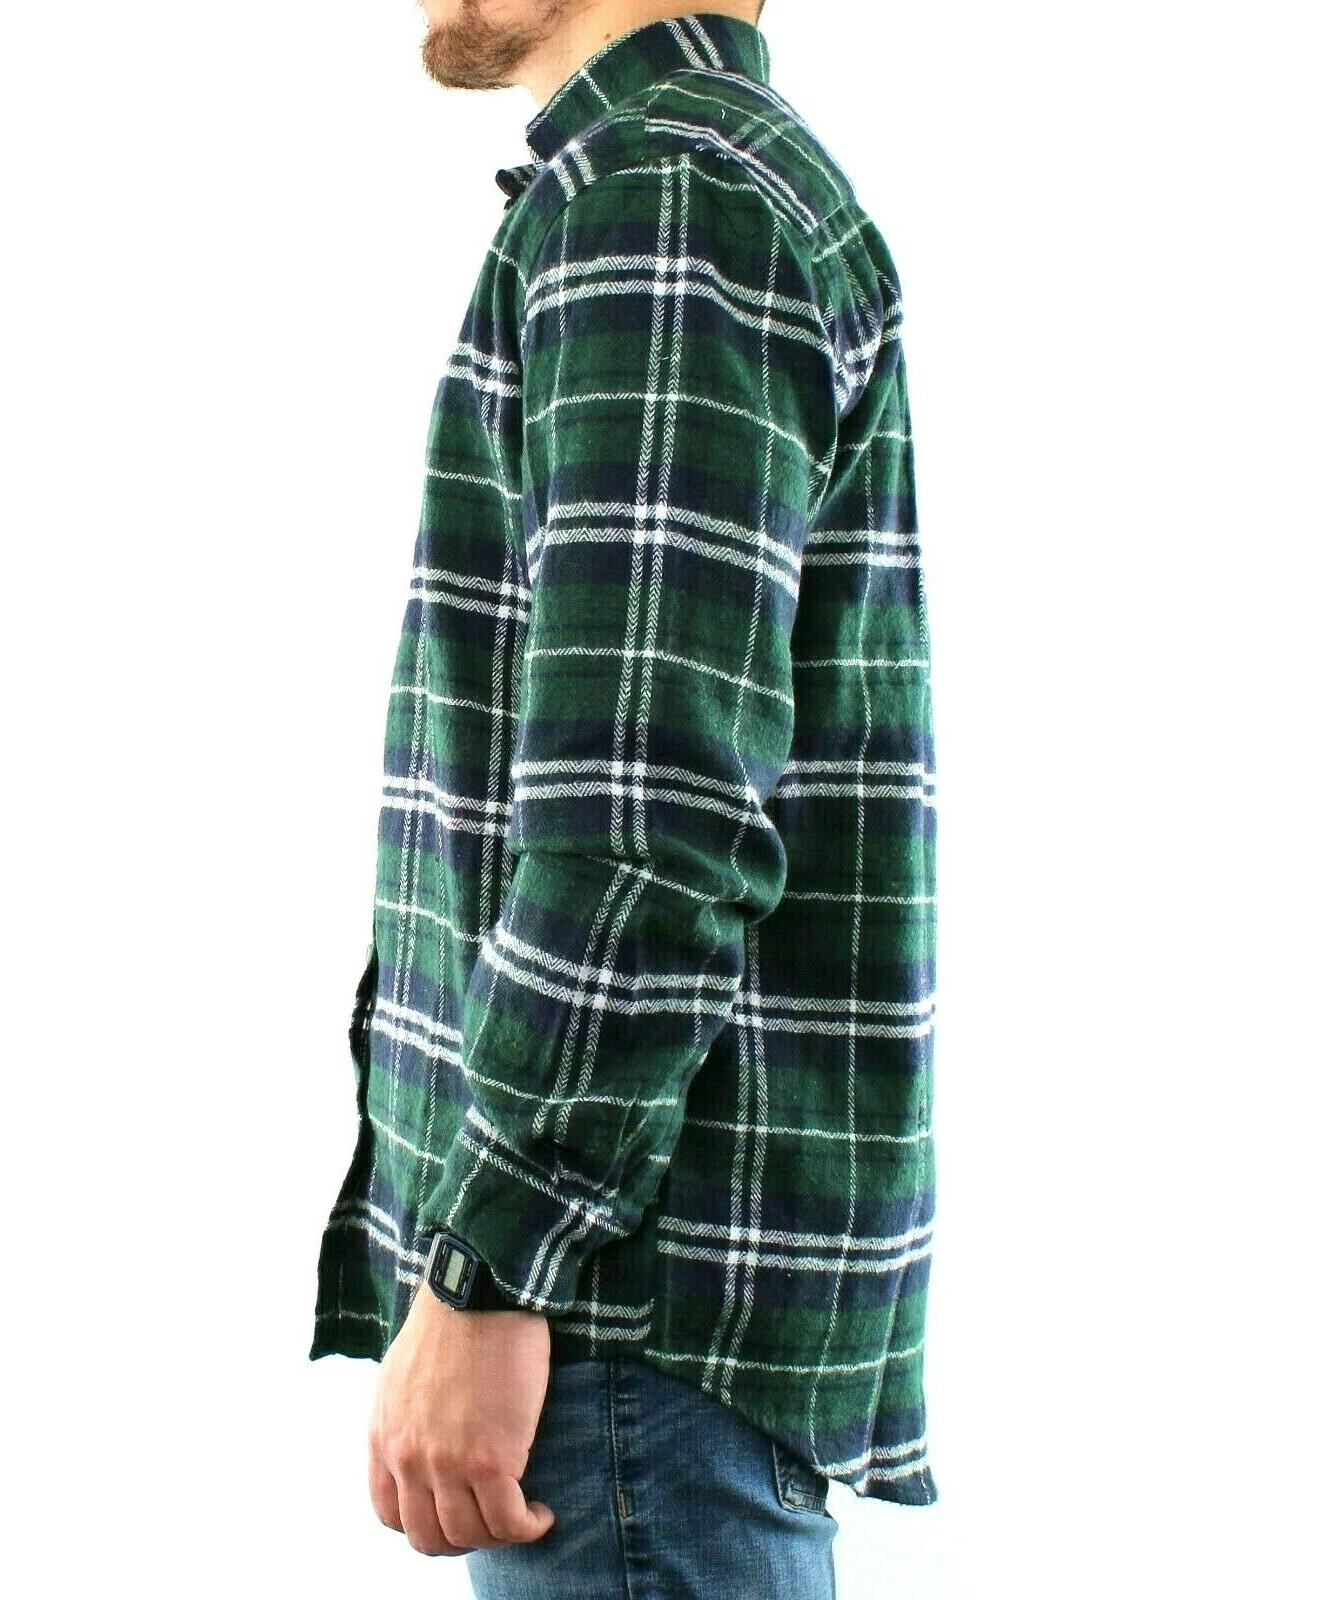 St. Flannel Shirt Men's Plaid Long Sleeve Down